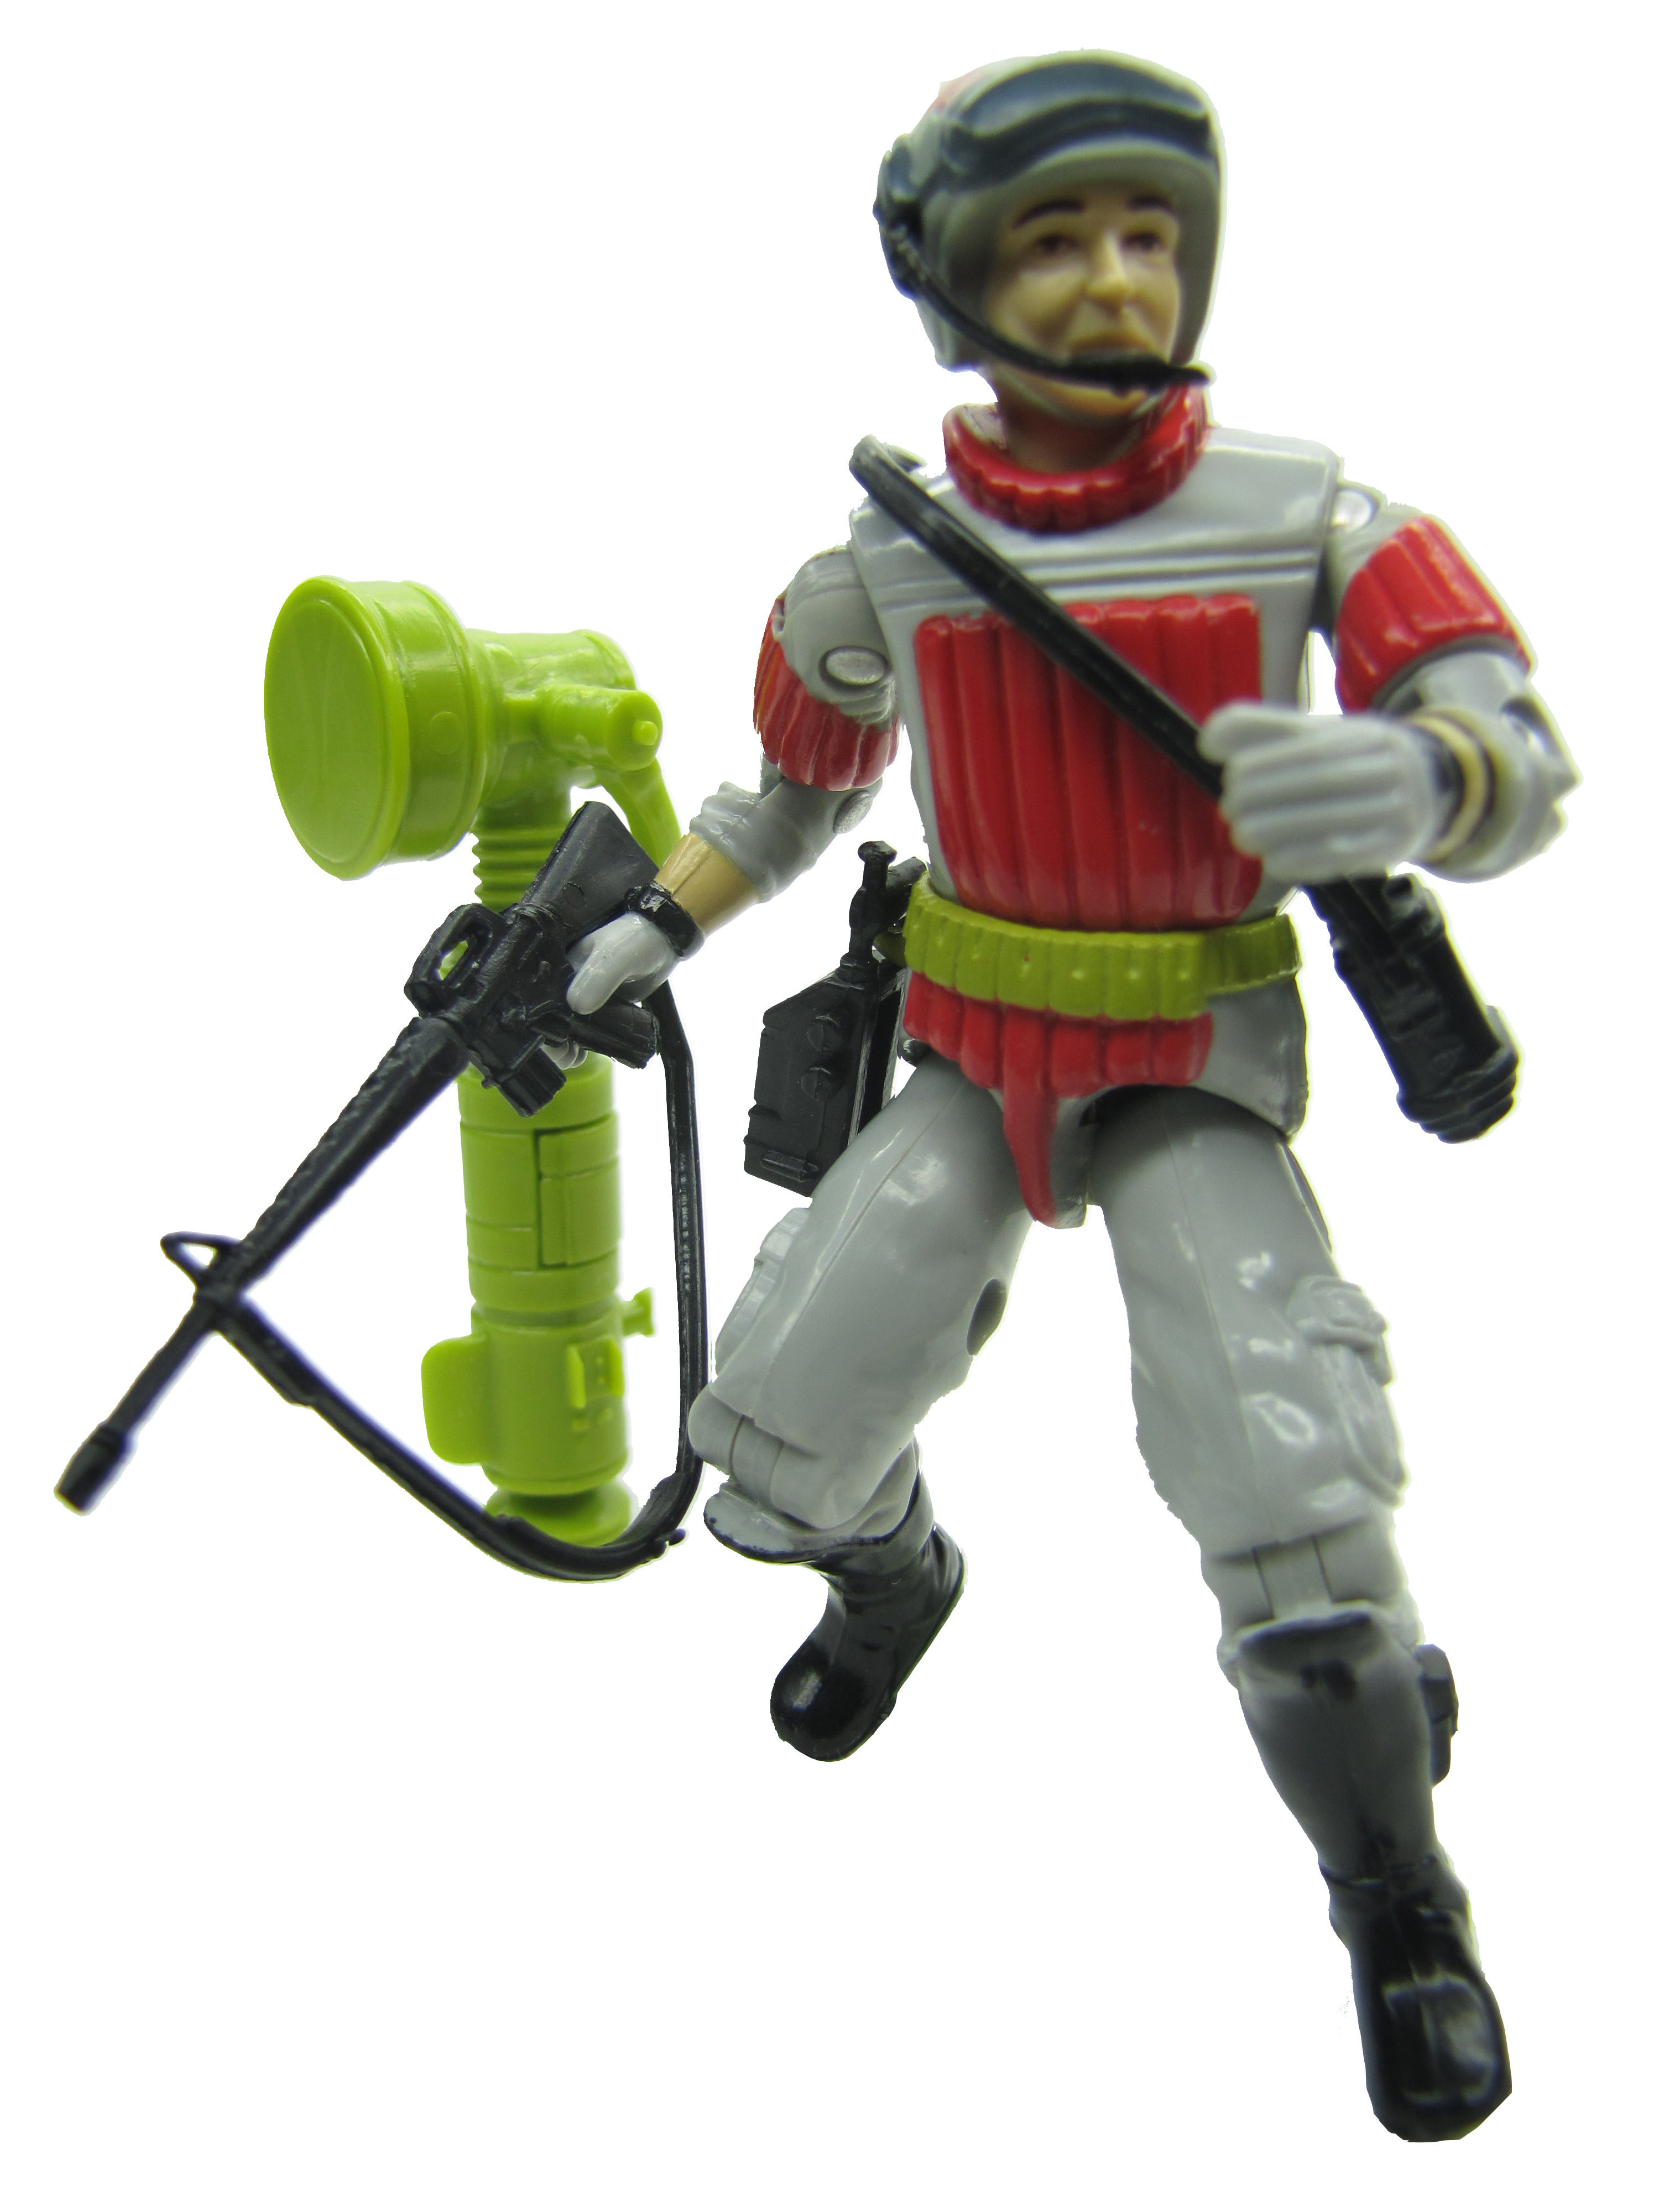 1987 GIJoe Sneak Peek ADVANCED RECON Complete